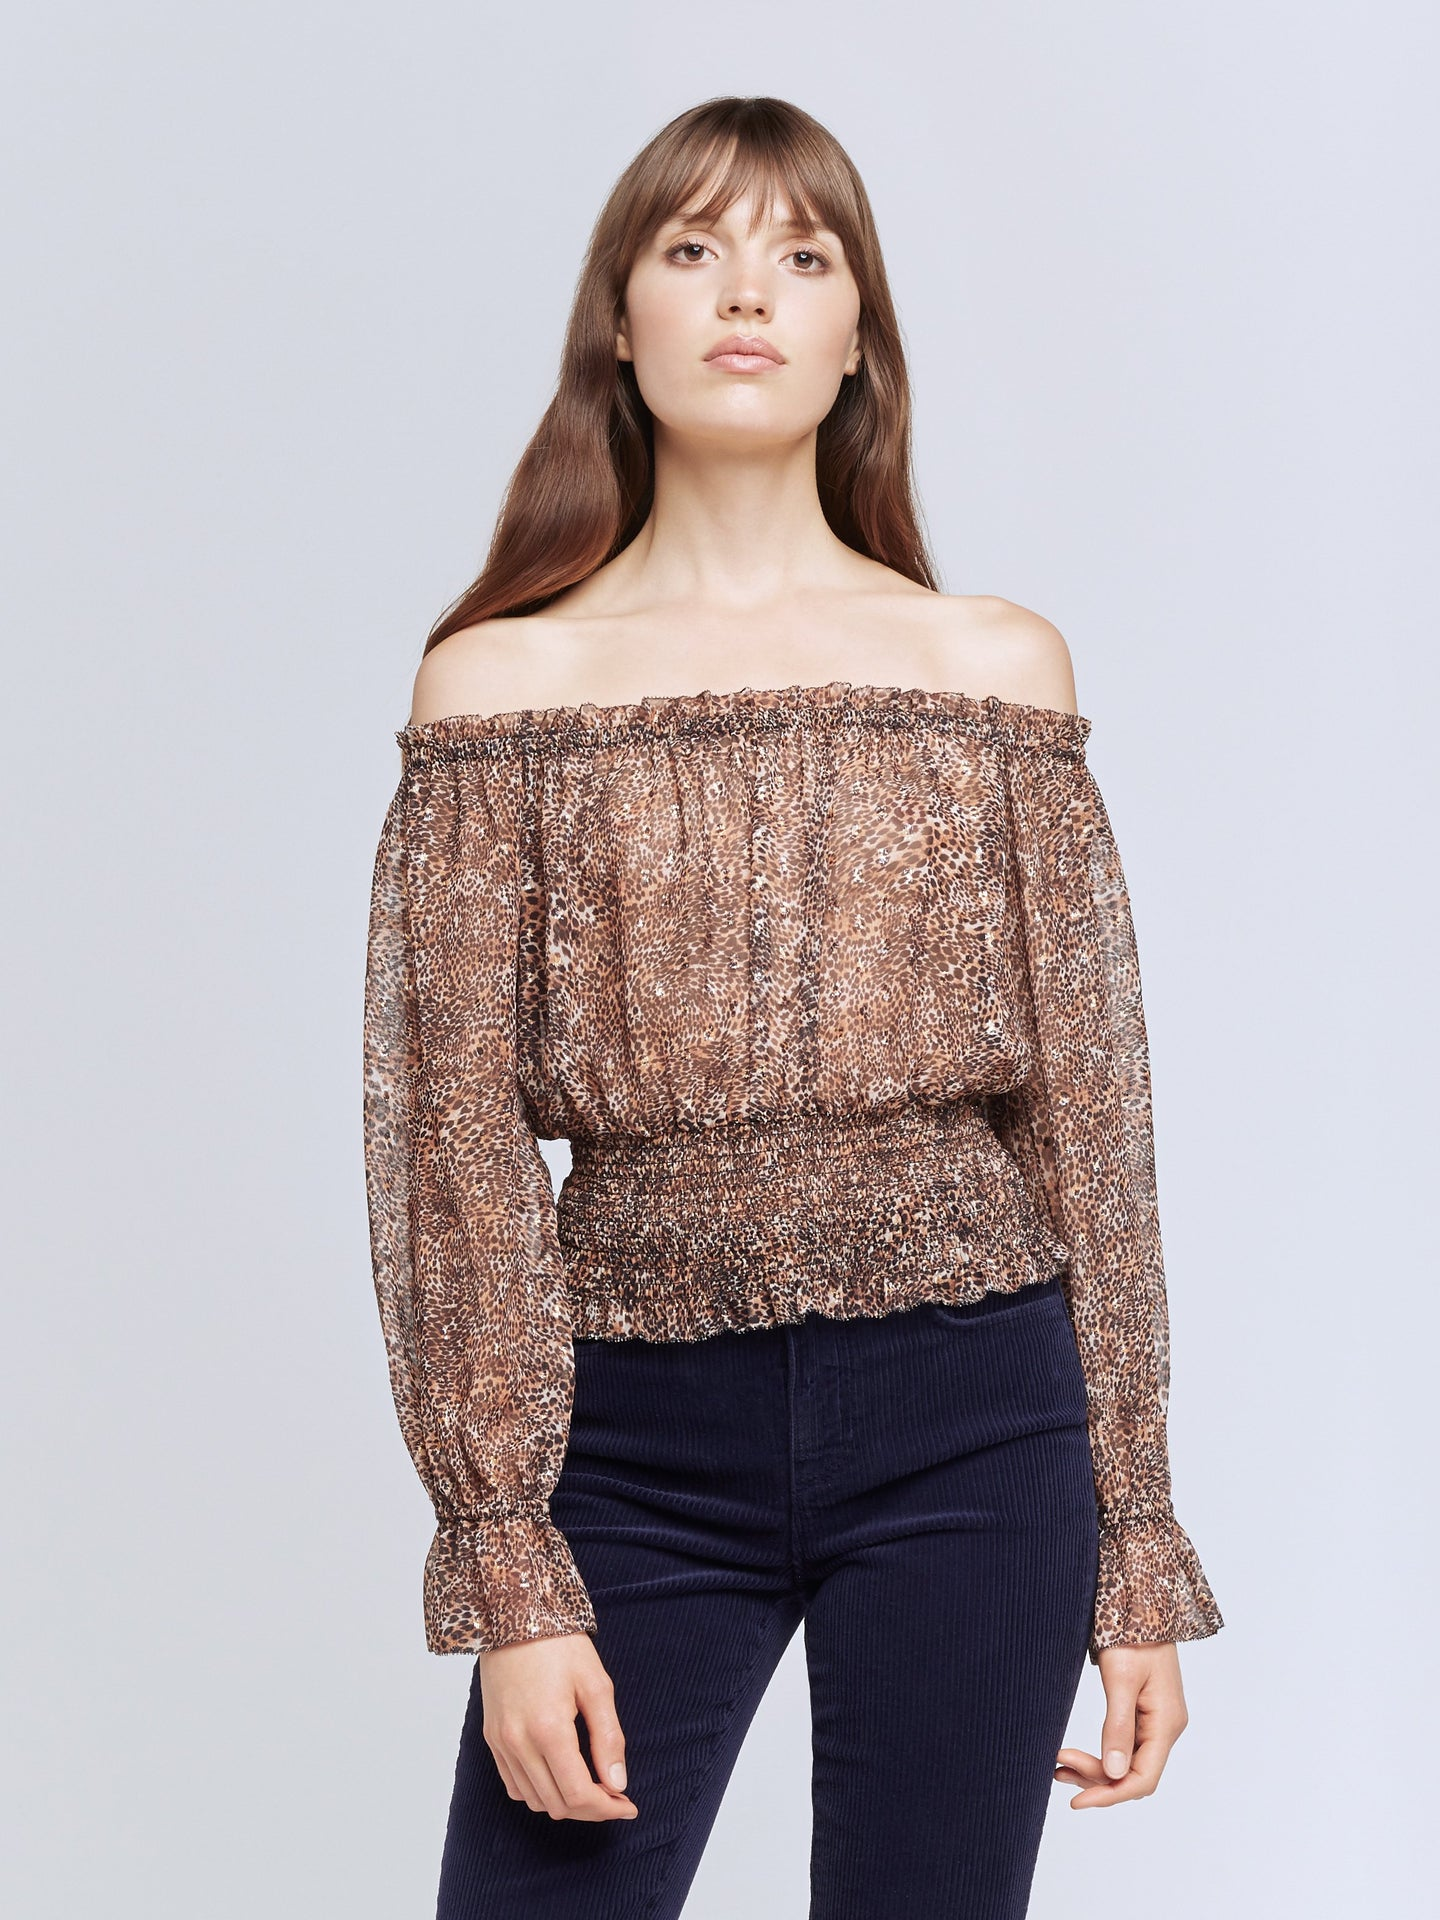 L'Agence Lilia Top - Brown/Black Small Cheetah